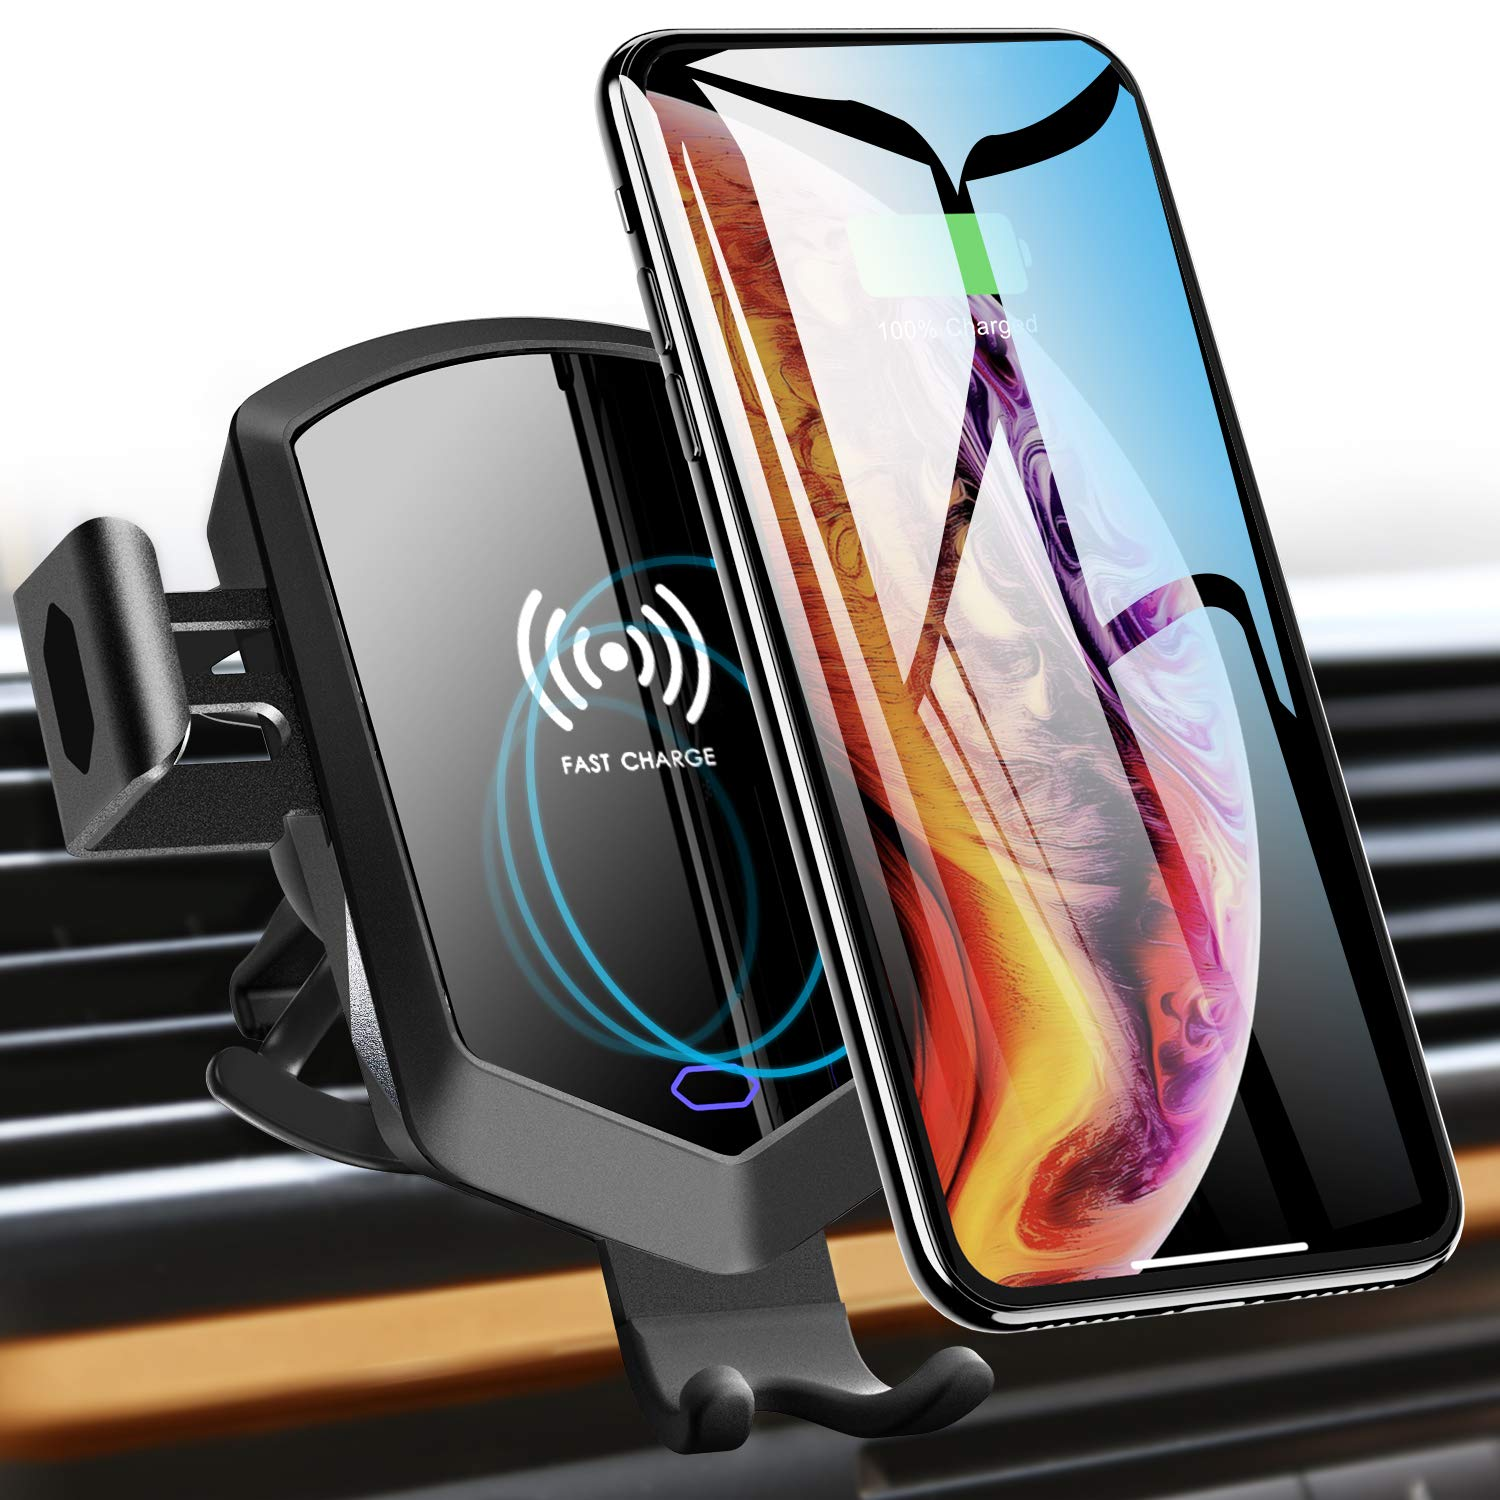 TOZO Wireless Car Charger Motor Clamping Silent Mount Holder Auto Sensing Fast Charging for iPhone Xs/XR/Xs Max/X/10/8/8 Plus, Samsung Galaxy S8 S8 S9 S9 S10 S10 Note 8, 9 [Black]